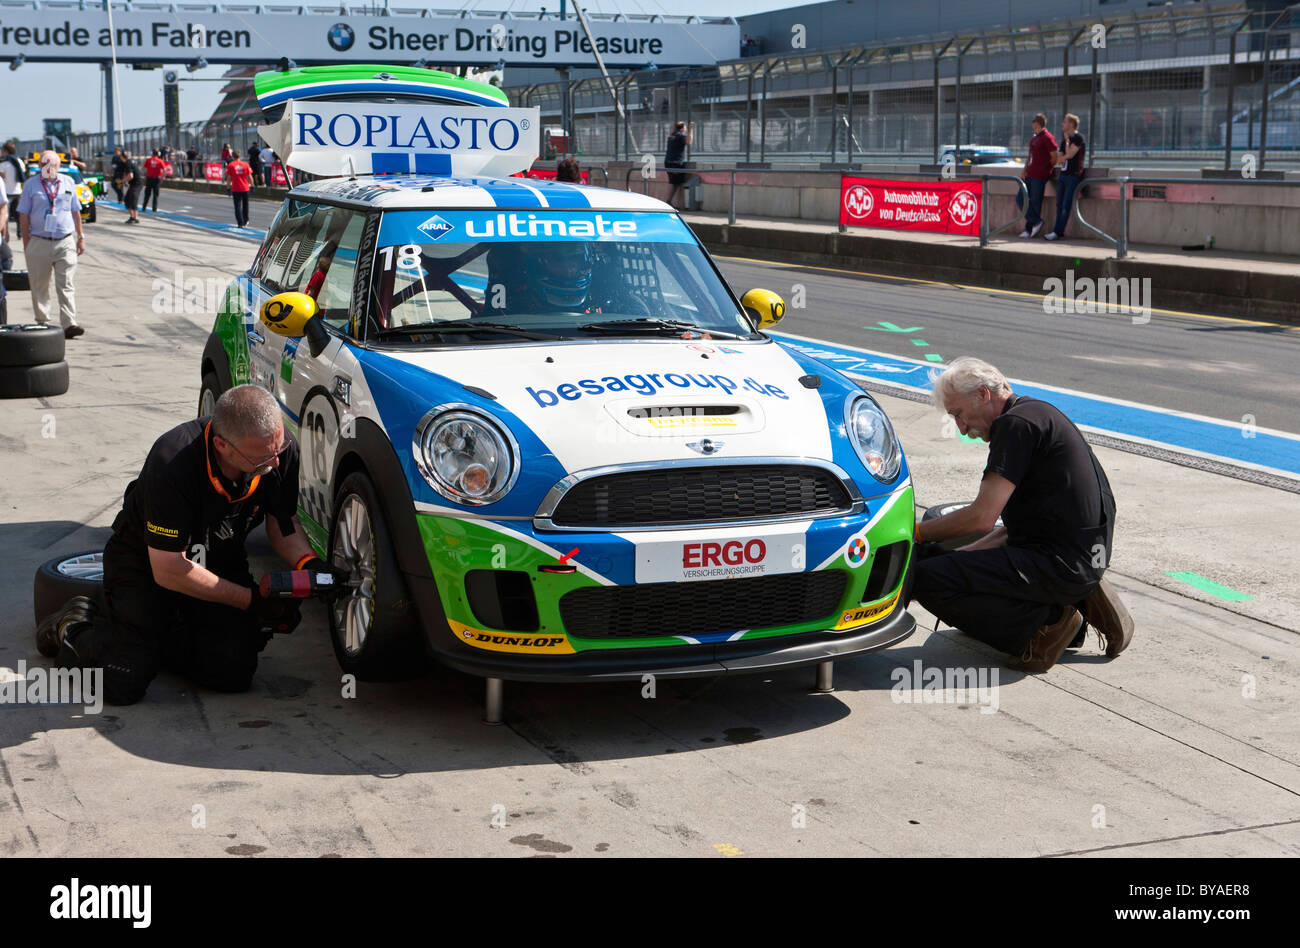 Mini Race Car Stock Photos & Mini Race Car Stock Images - Page 2 - Alamy